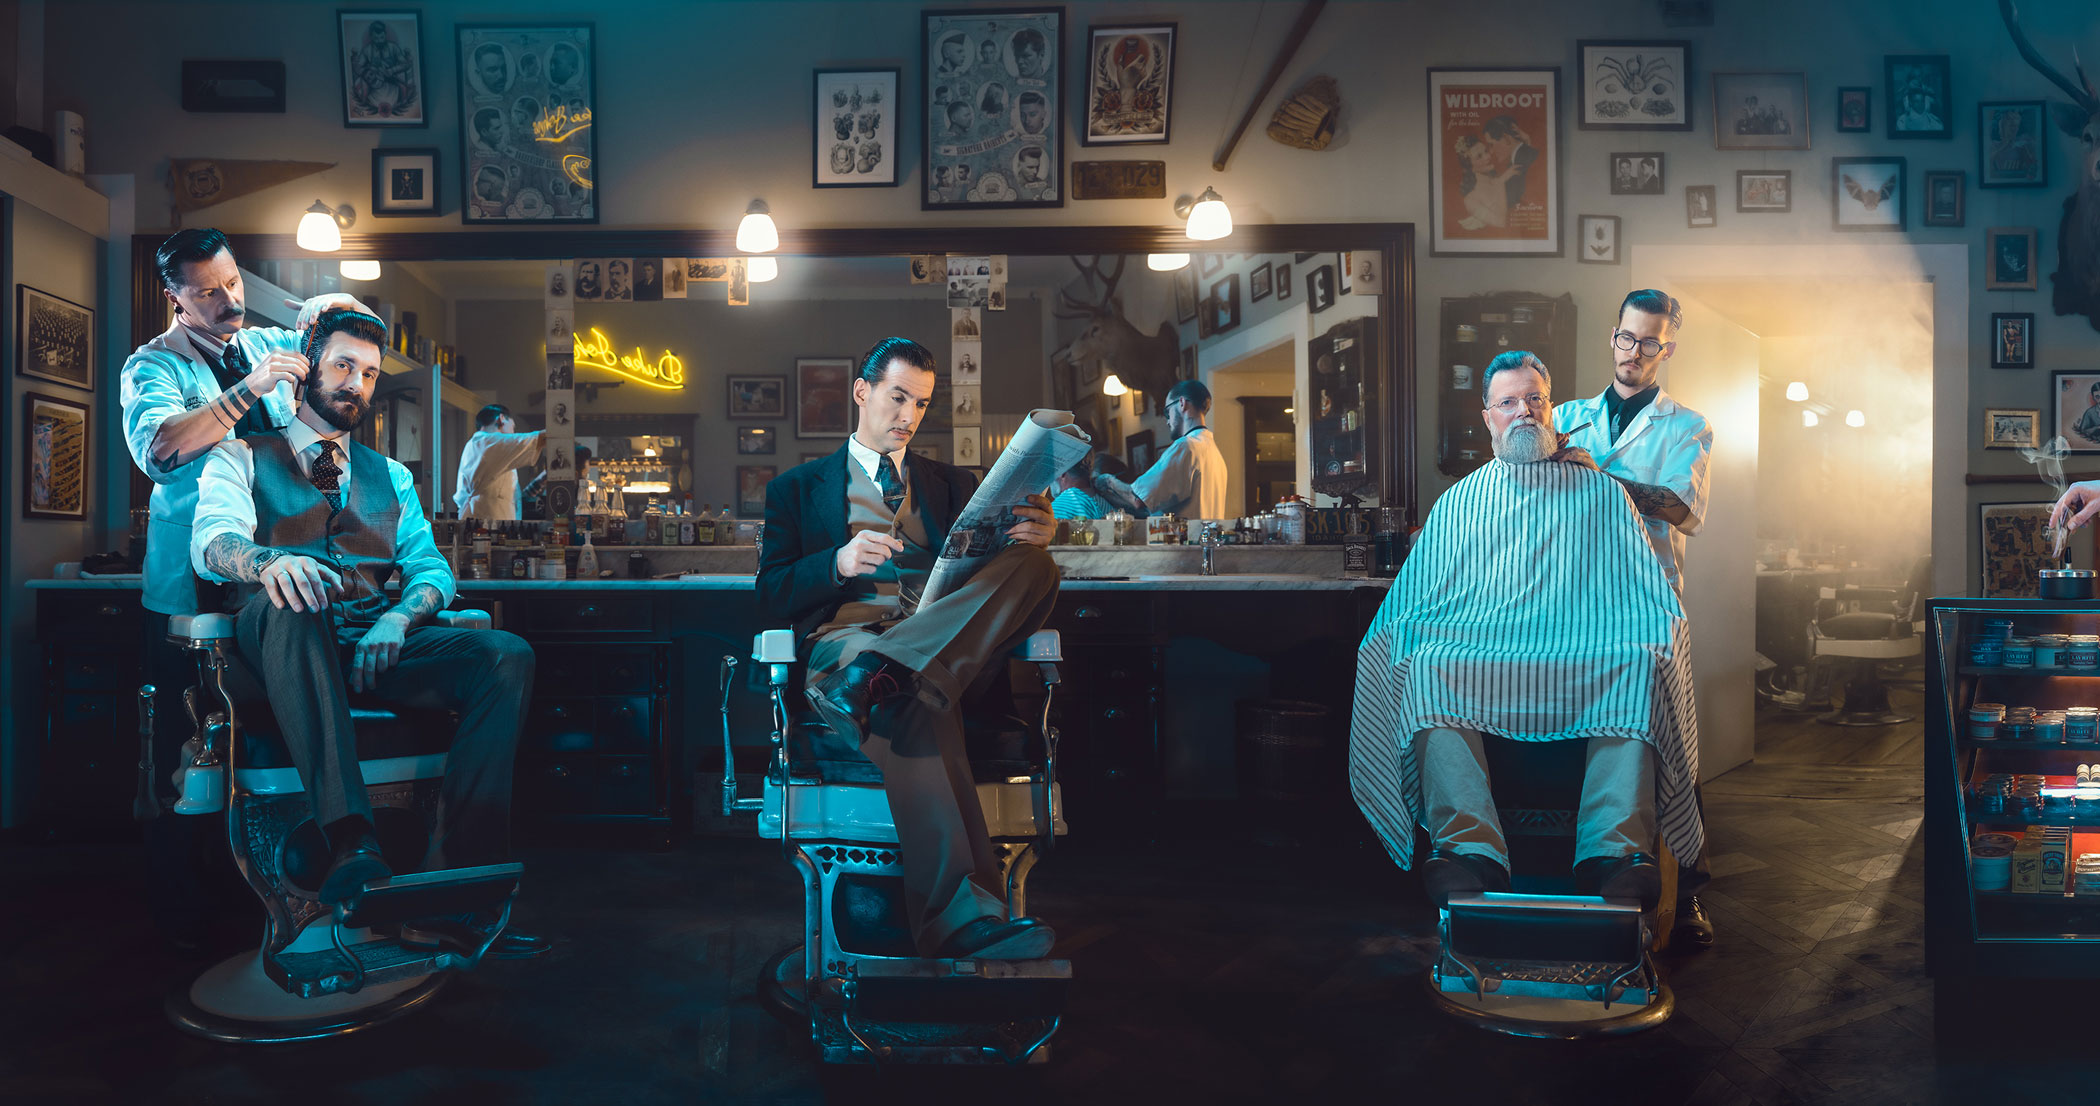 Duke_Johns_Barbershop_BG1